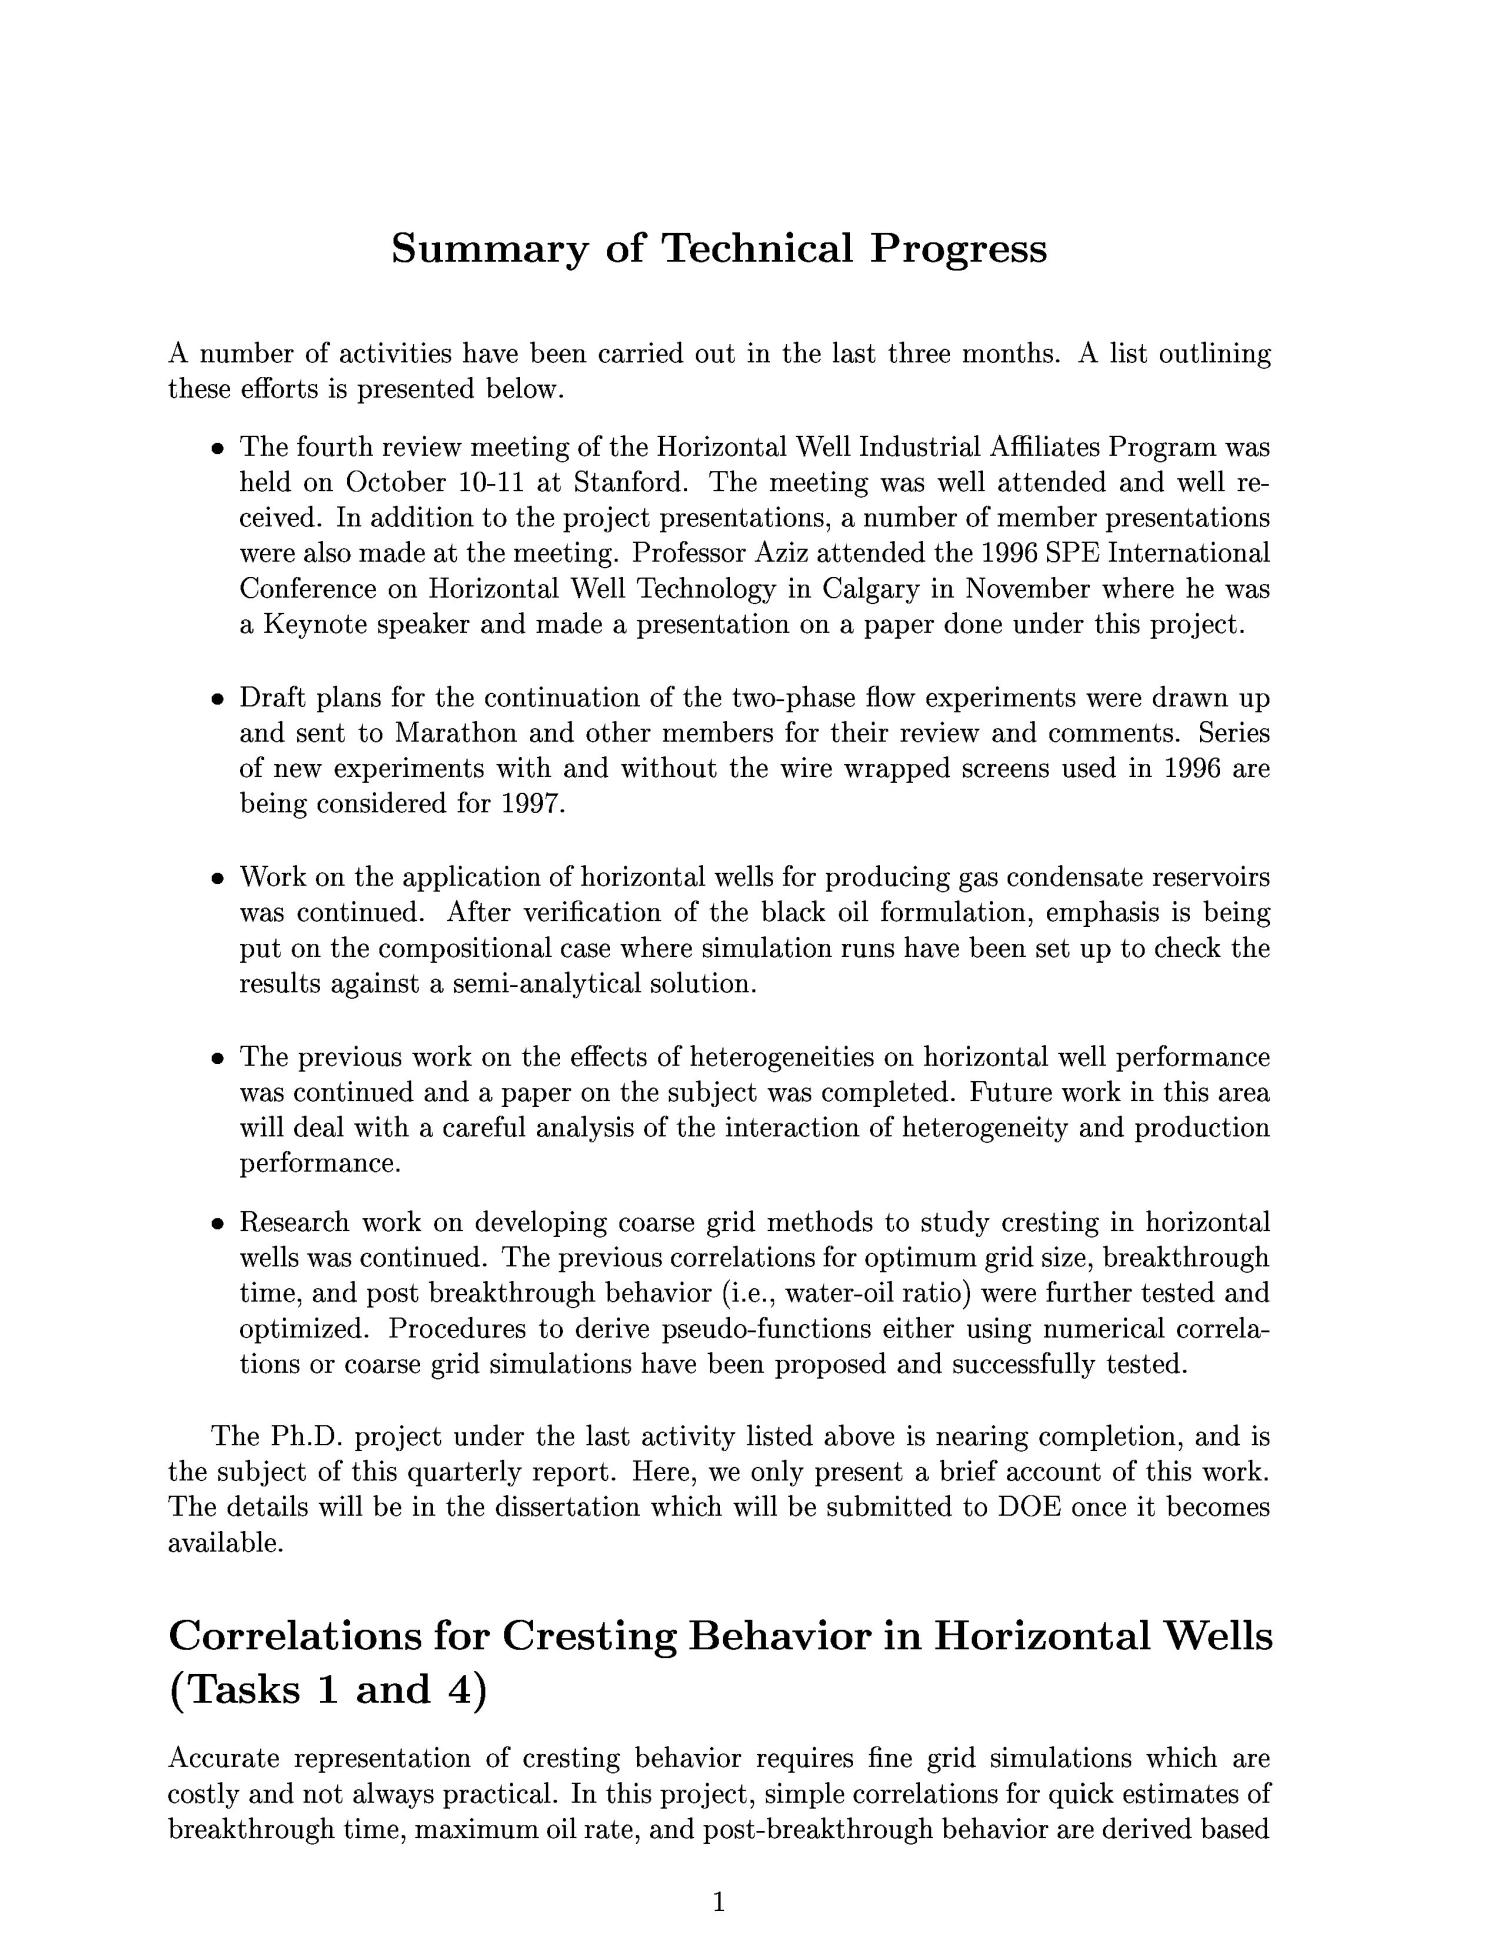 Coorelations for cresting behavior in horizontal wells. Quarterly report, October 1, 1996--December 31, 1996                                                                                                      [Sequence #]: 3 of 16